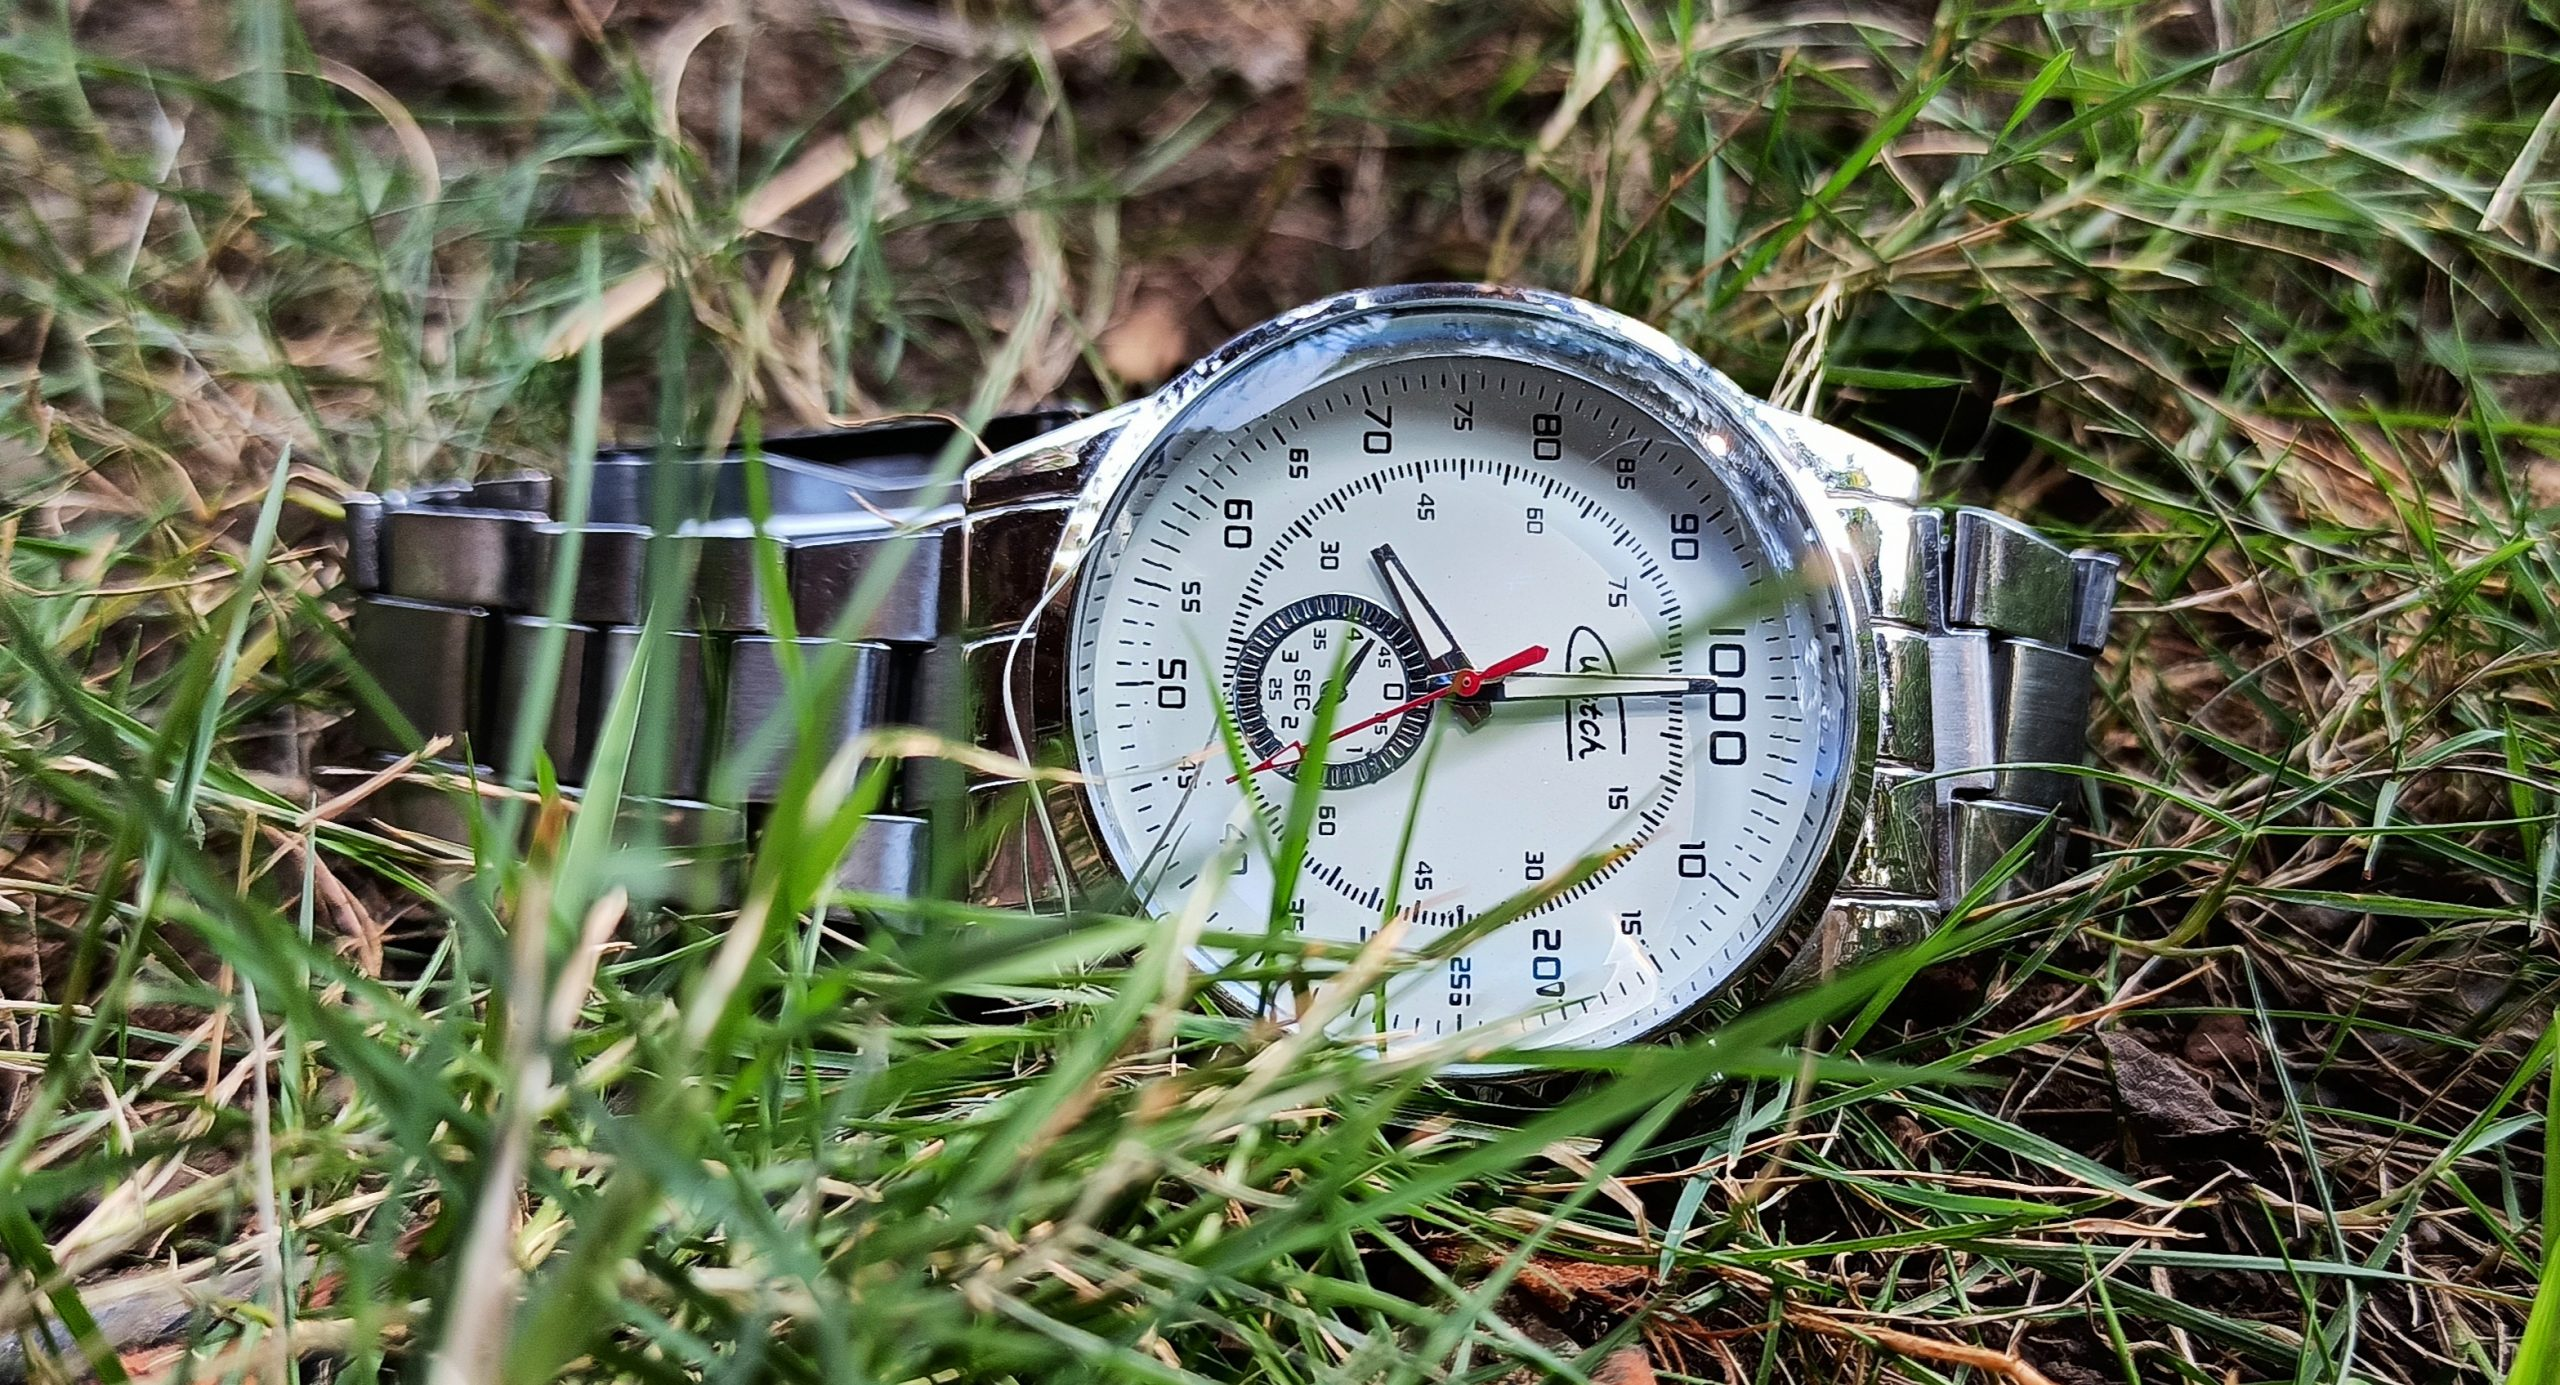 A wrist watch fall on grass